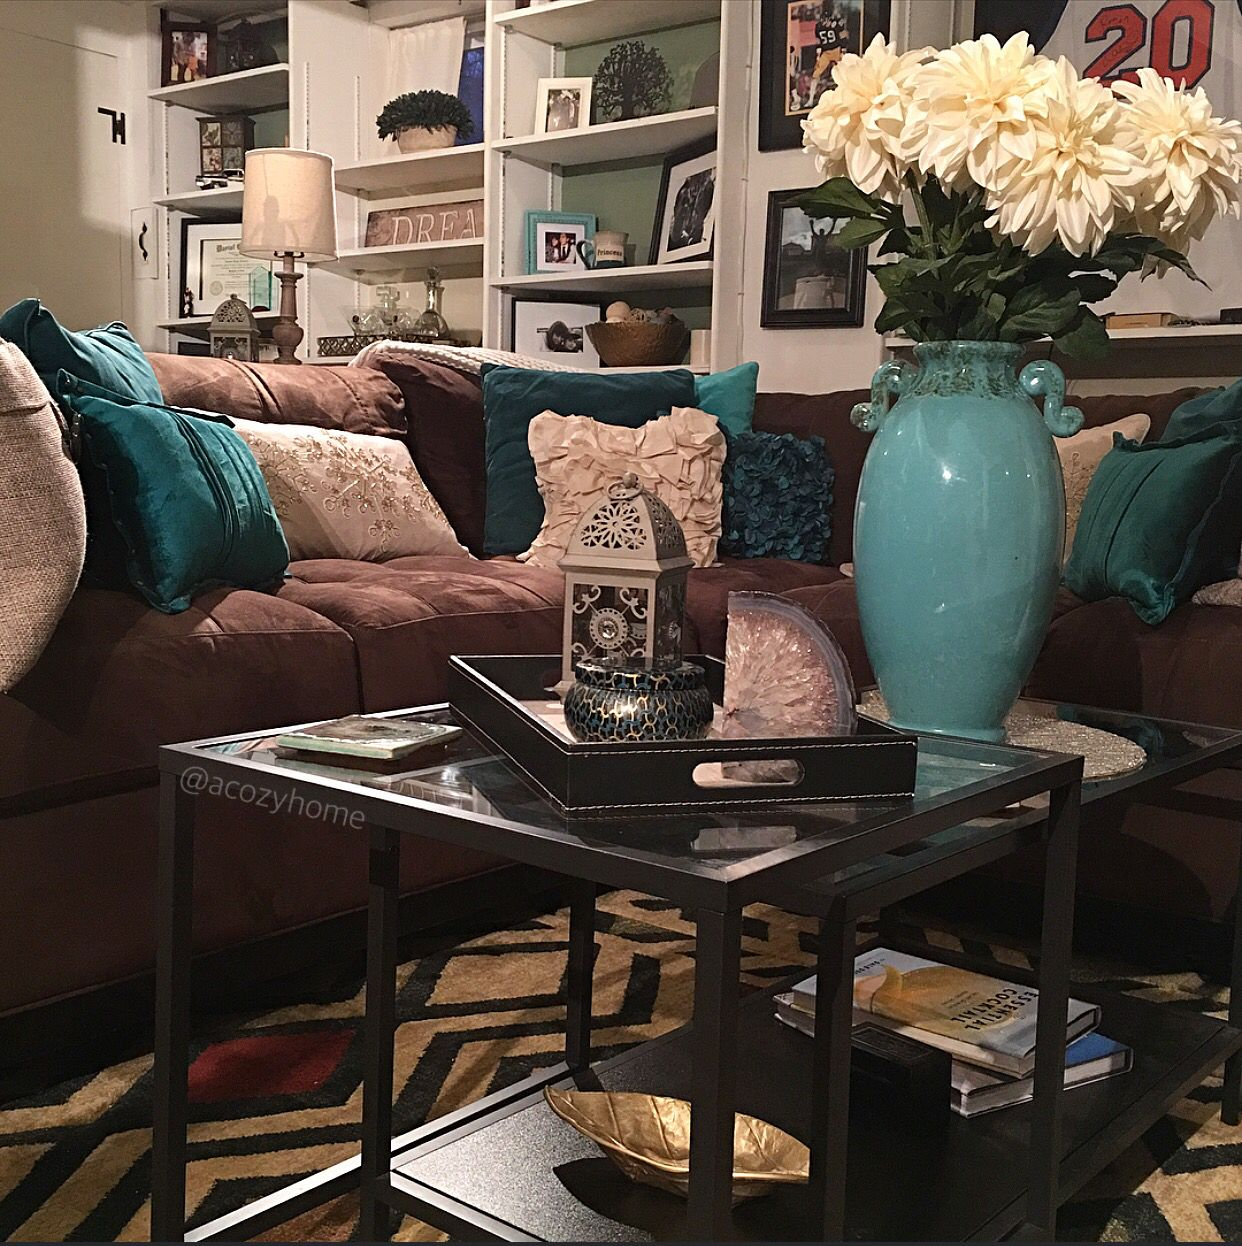 pinterest home decor living room%0A Cozy brown couch with teal accents  turquoise and brown  builtin shelves